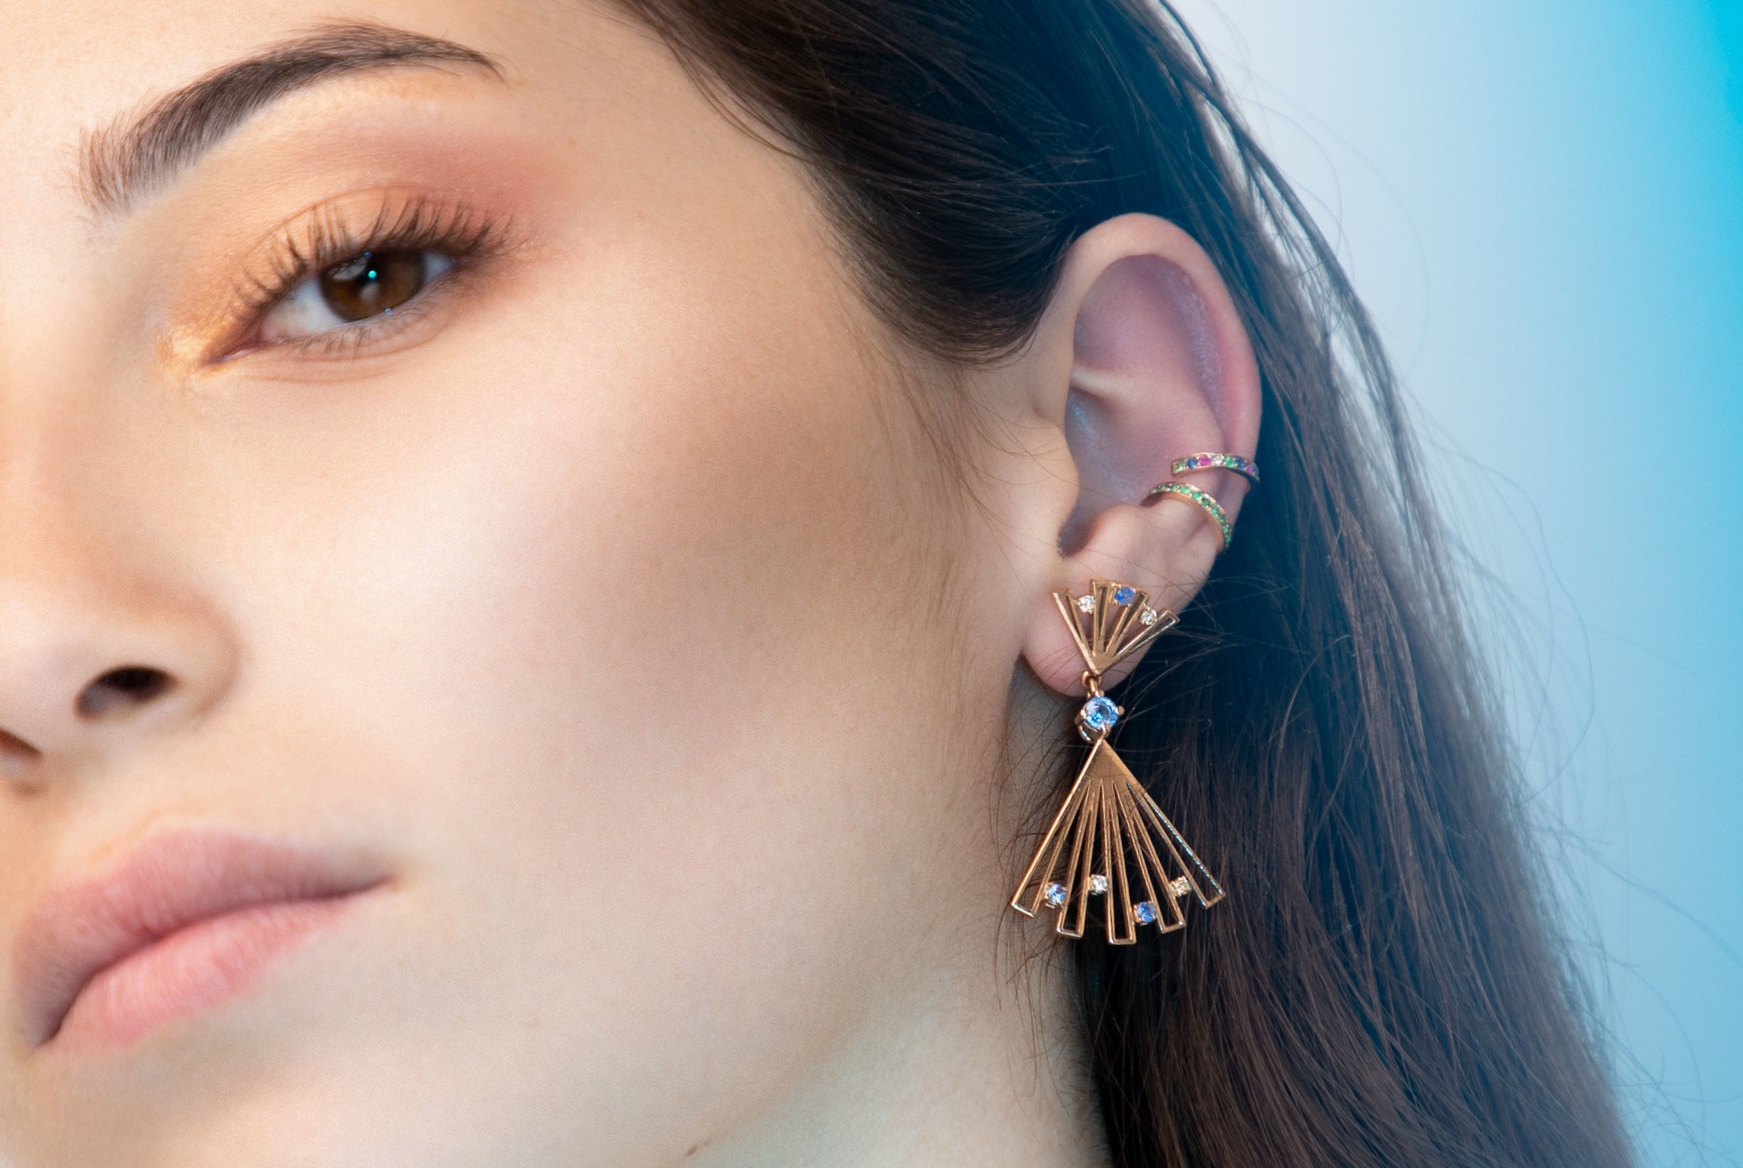 Panka  earring a modular earring that can be worn in two lengths and transforms into a pendant